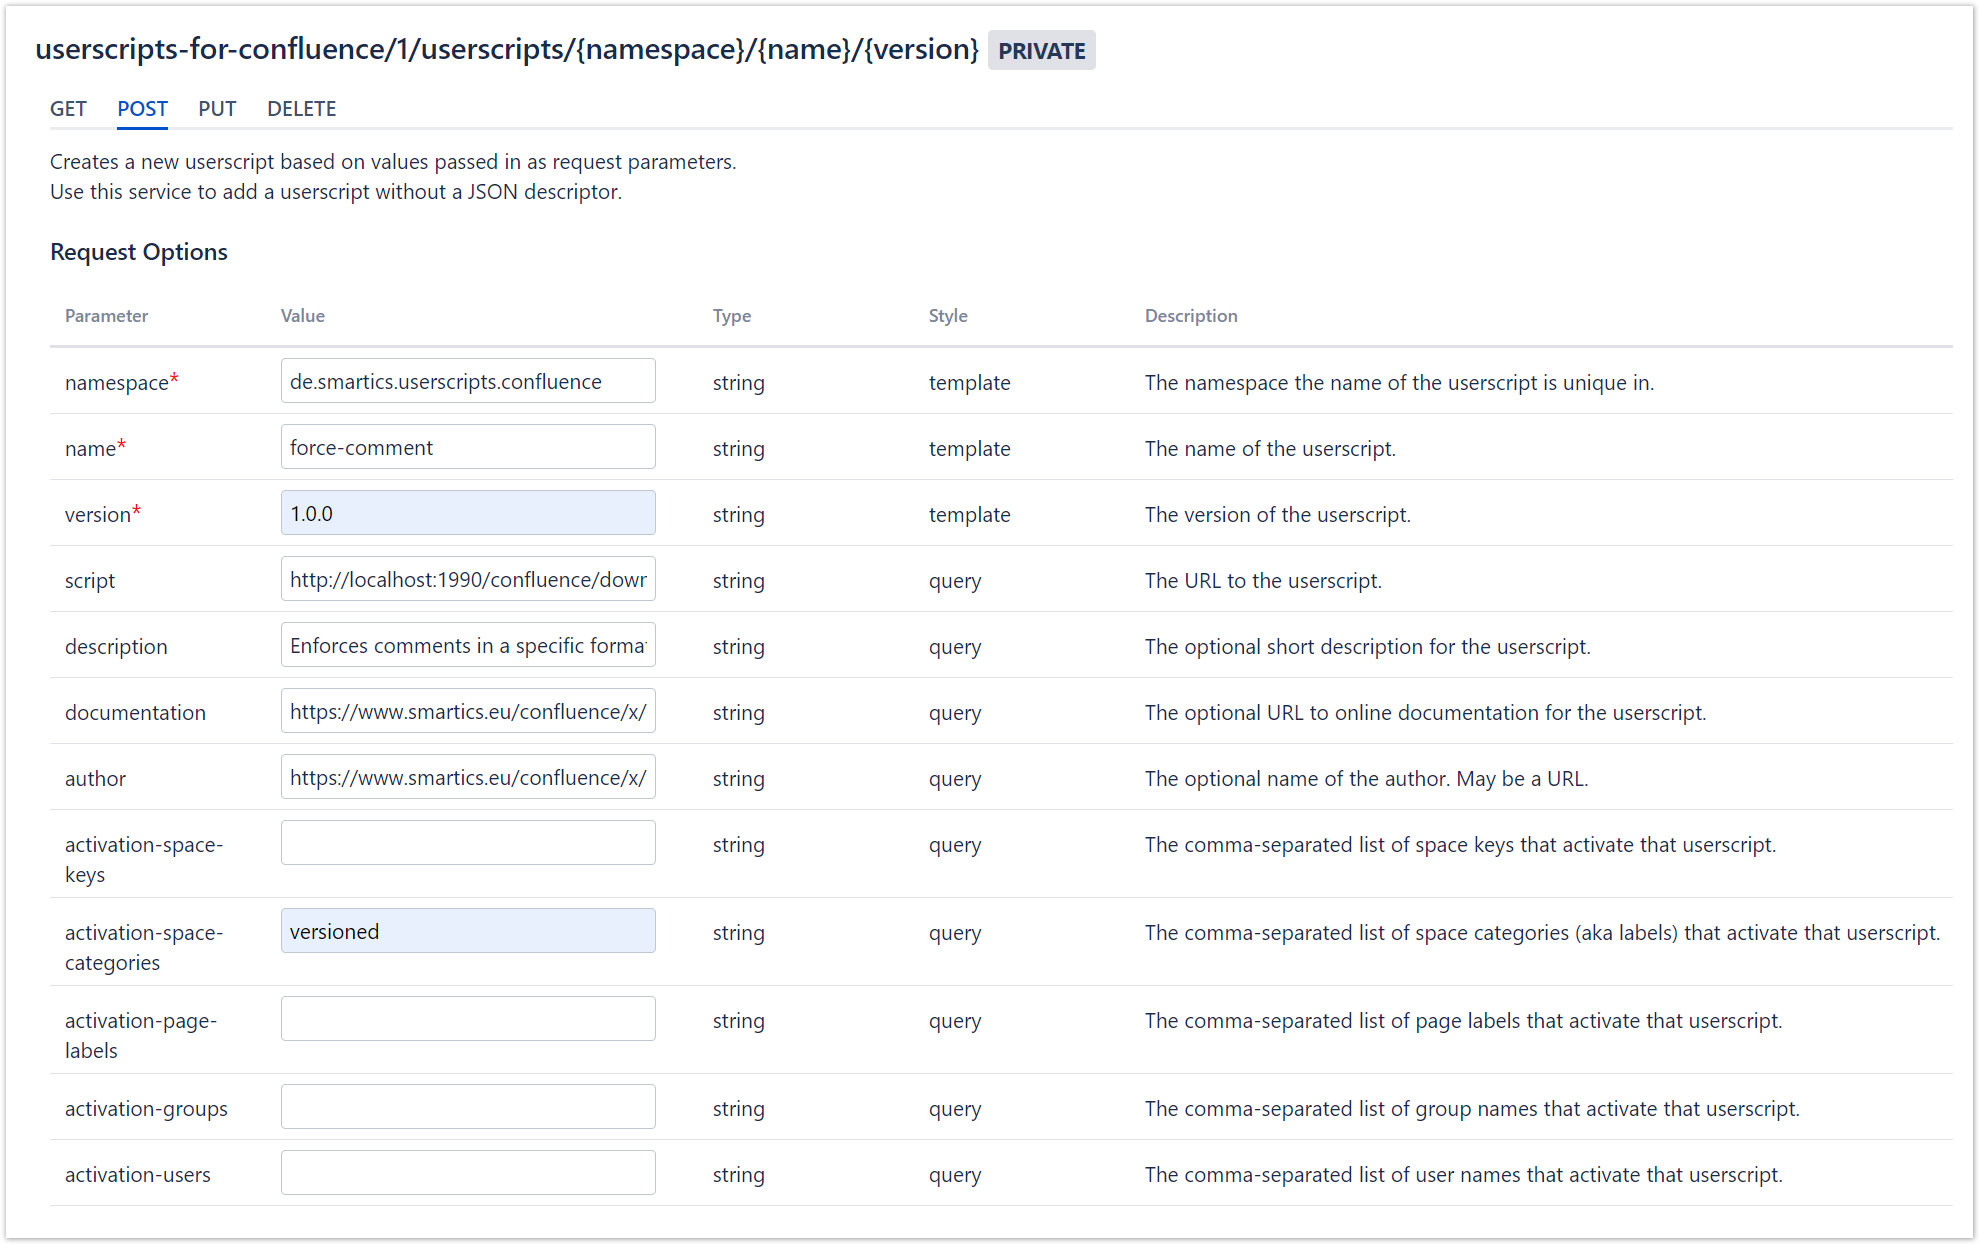 Screenshot of the REST API Browser with the configuration for this userscript.